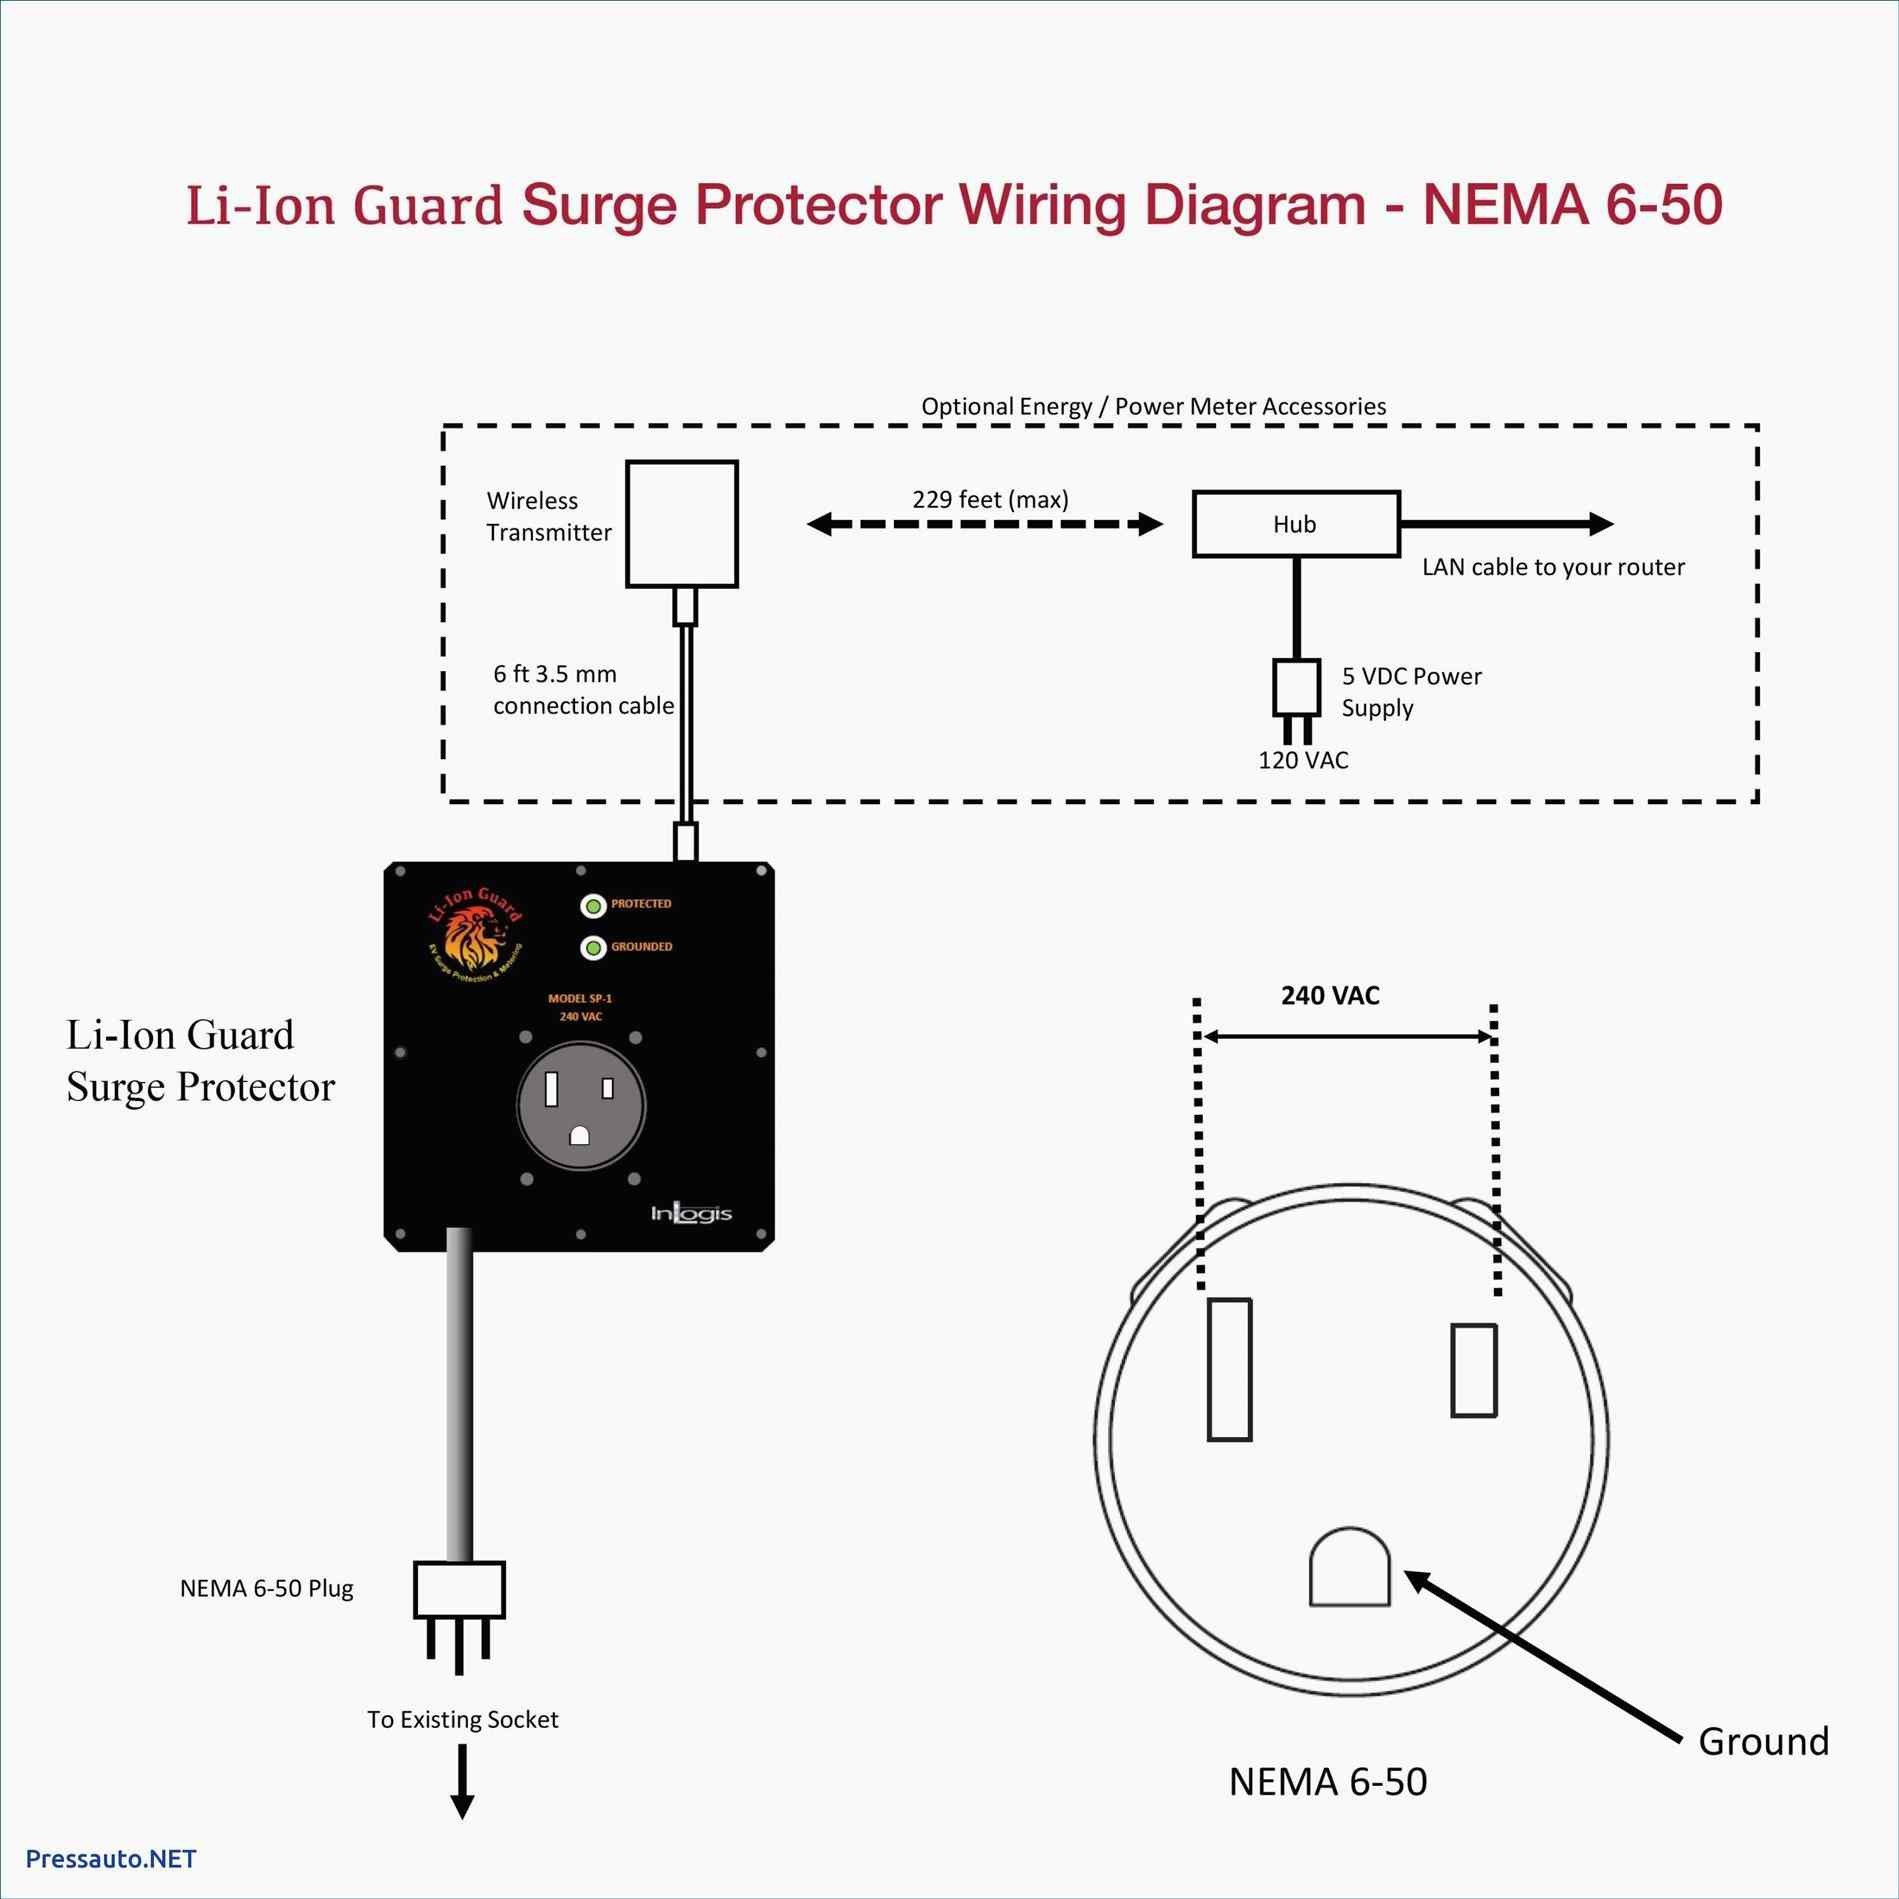 L14 20P Wiring Diagram Gallery | Wiring Diagram Sample - Nema L14-30 Wiring Diagram